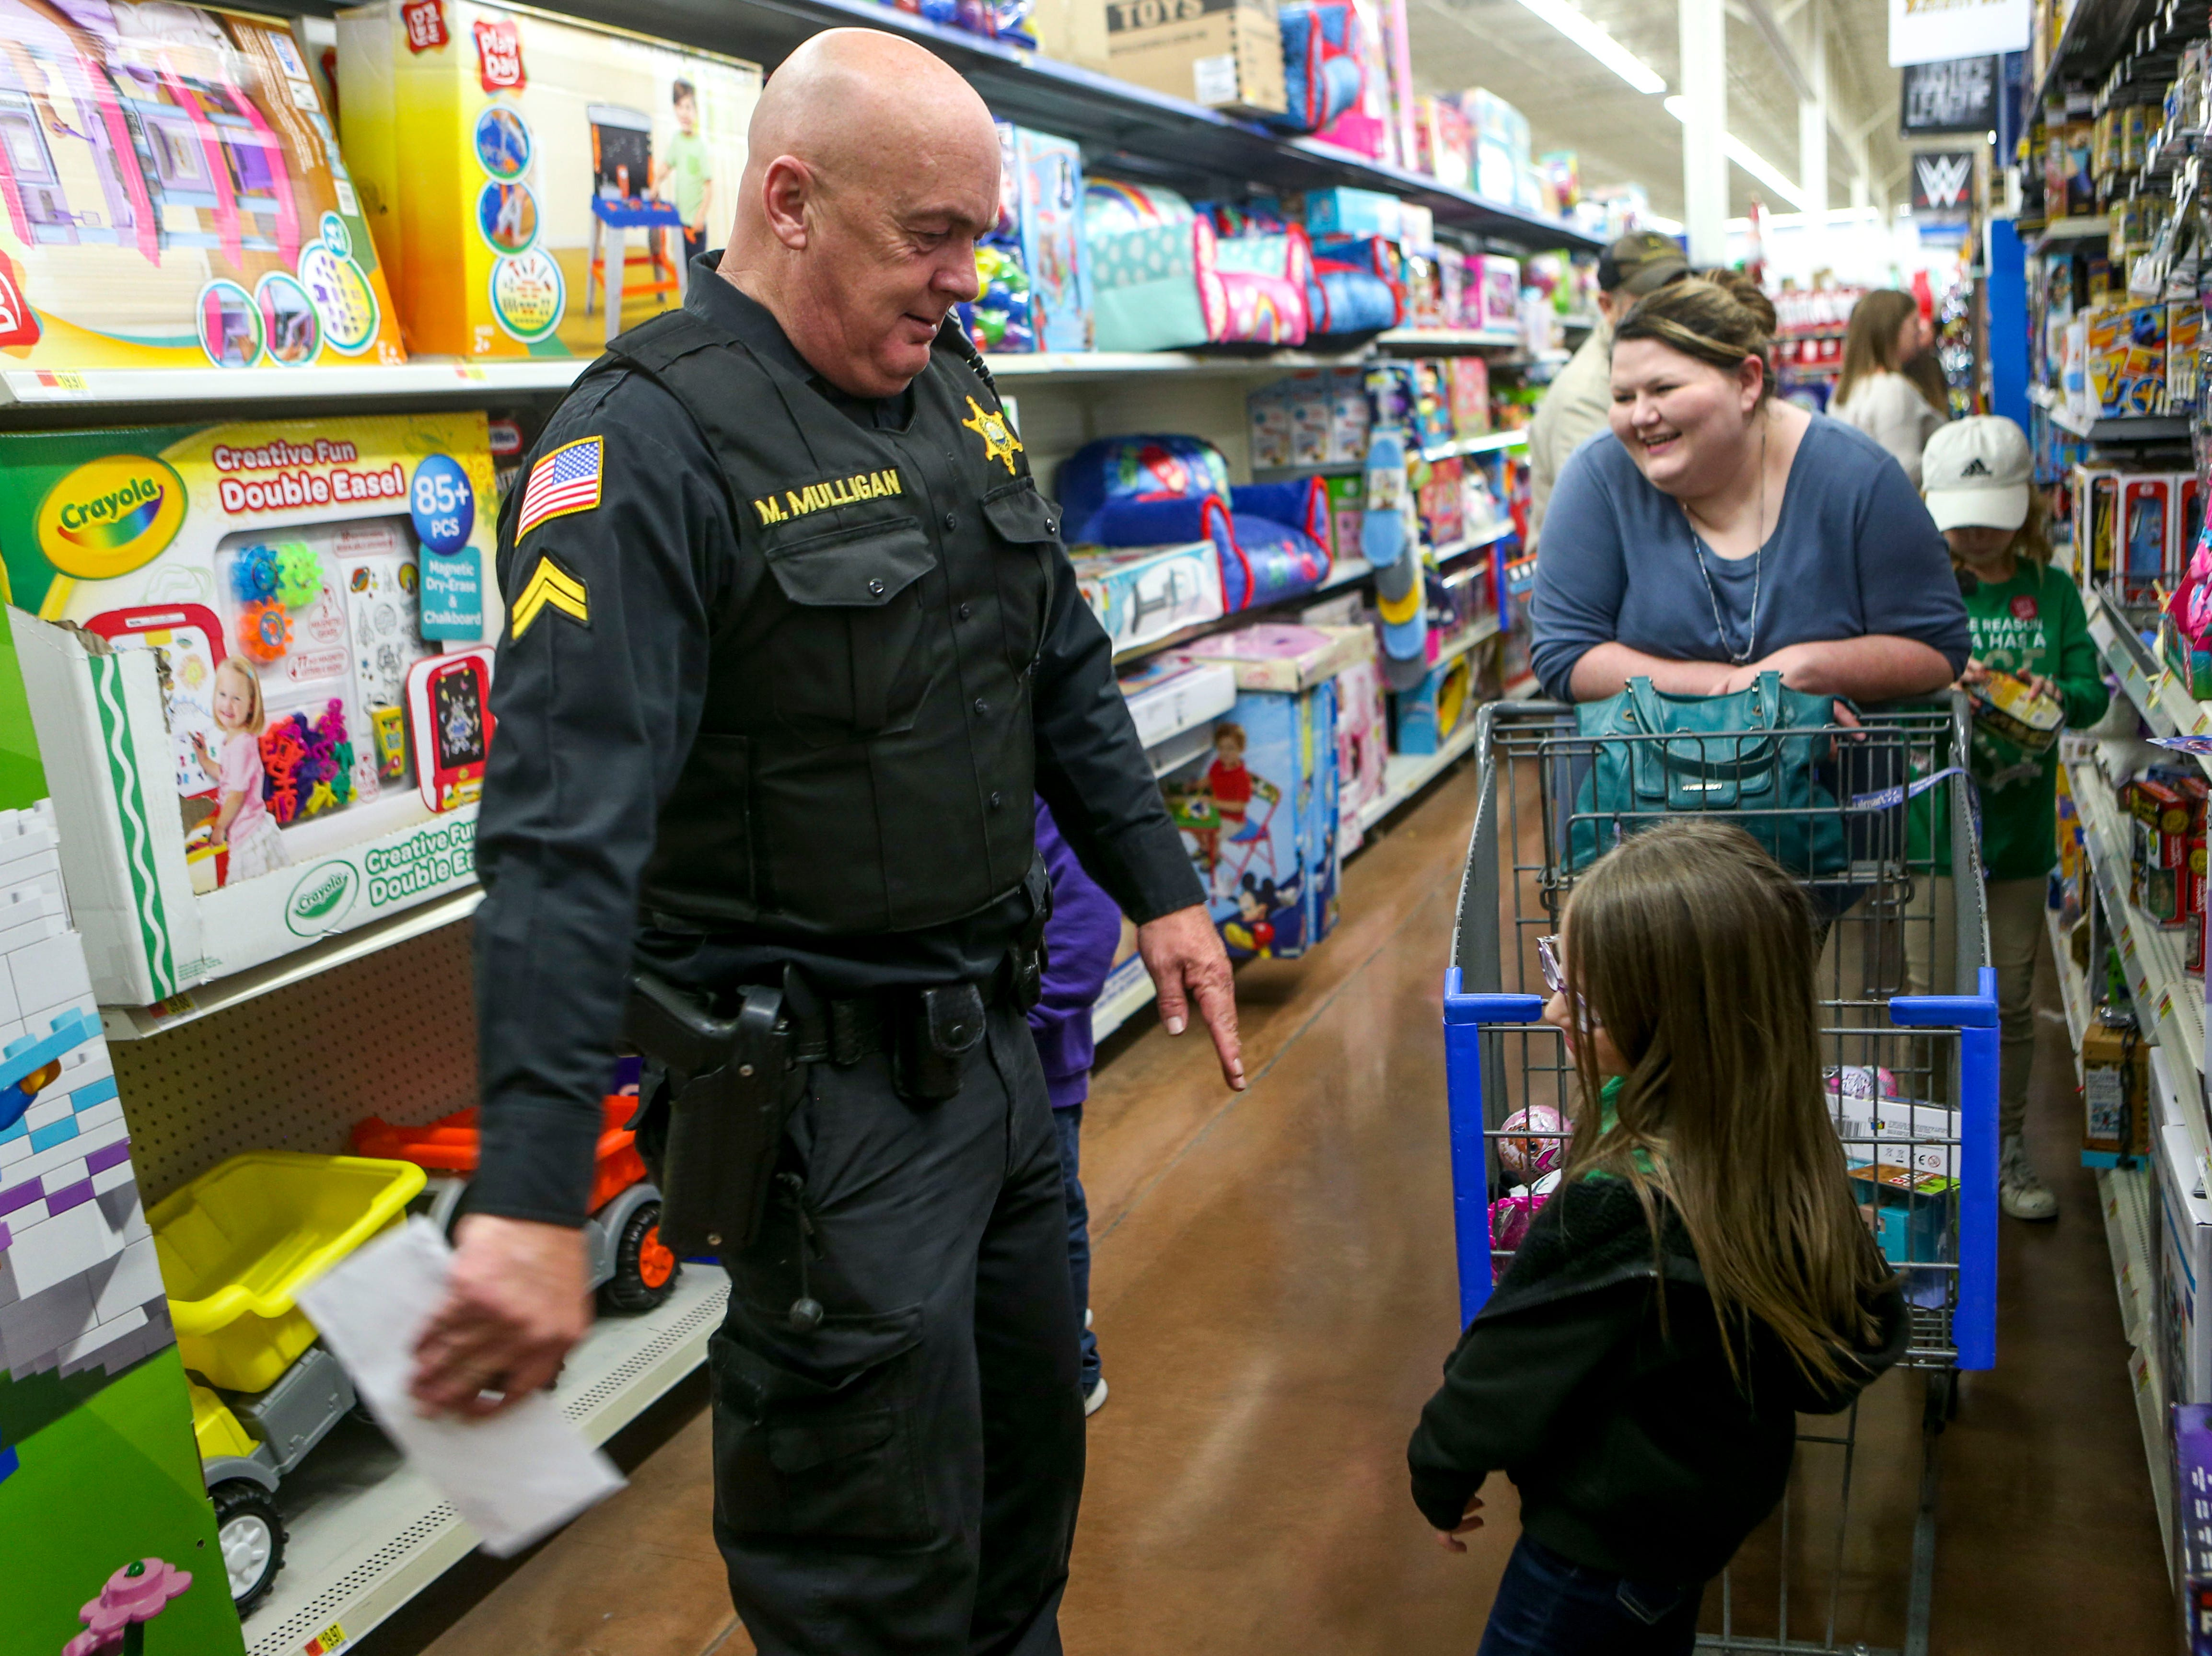 Carroll County Sheriff deputy Mike Mulligan does the floss dance with Layci Moore, 6, during shopping time for the annual Shop with a Cop program at Walmart in Milan, Tenn., on Thursday, Dec. 13, 2018.